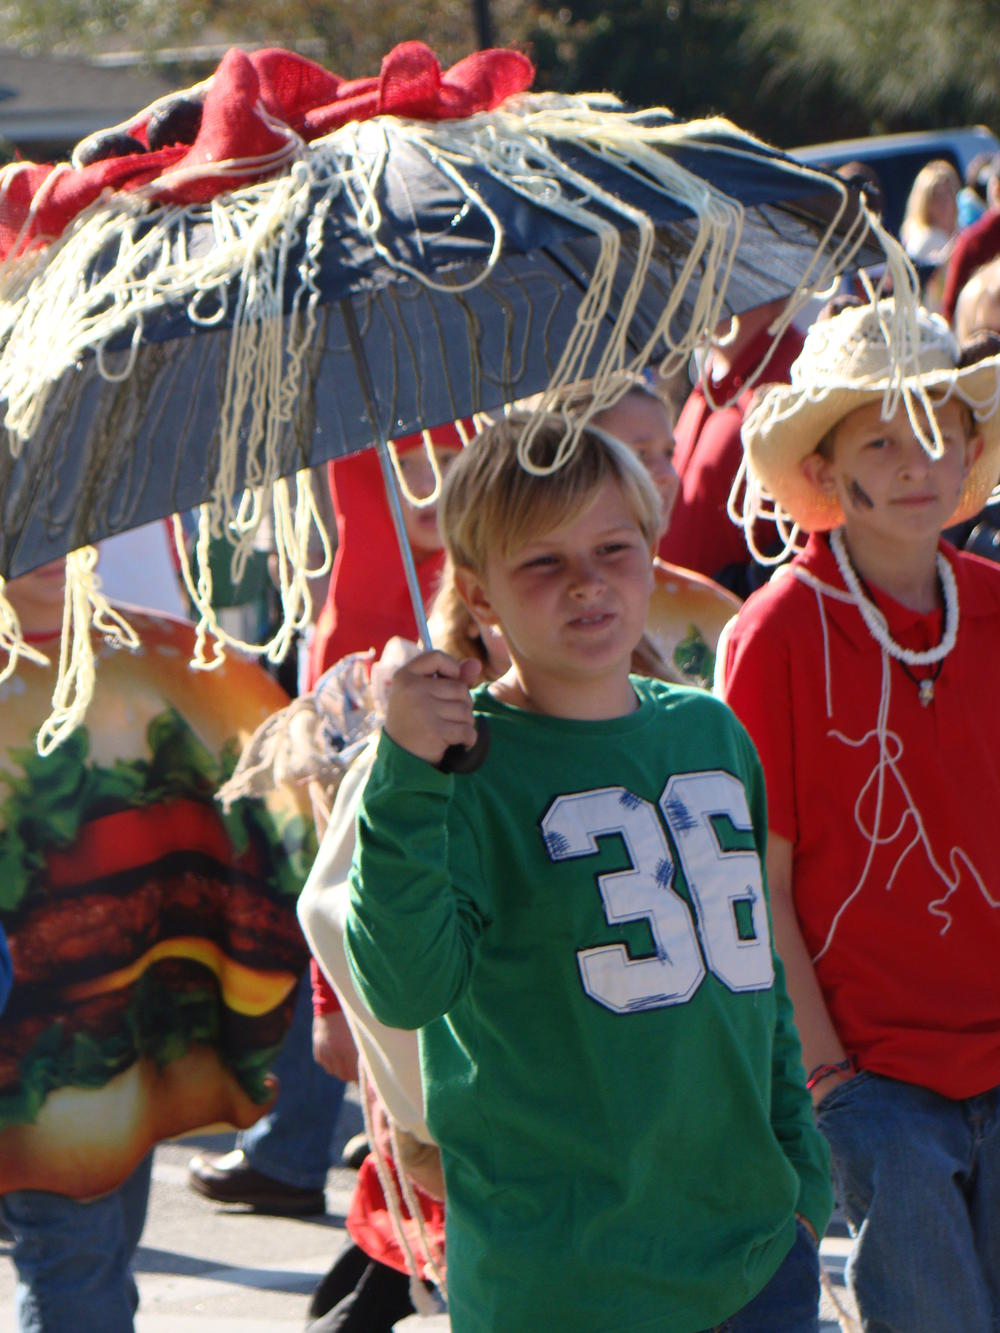 Picture from Brooklet Elementary Pumpkin Parade